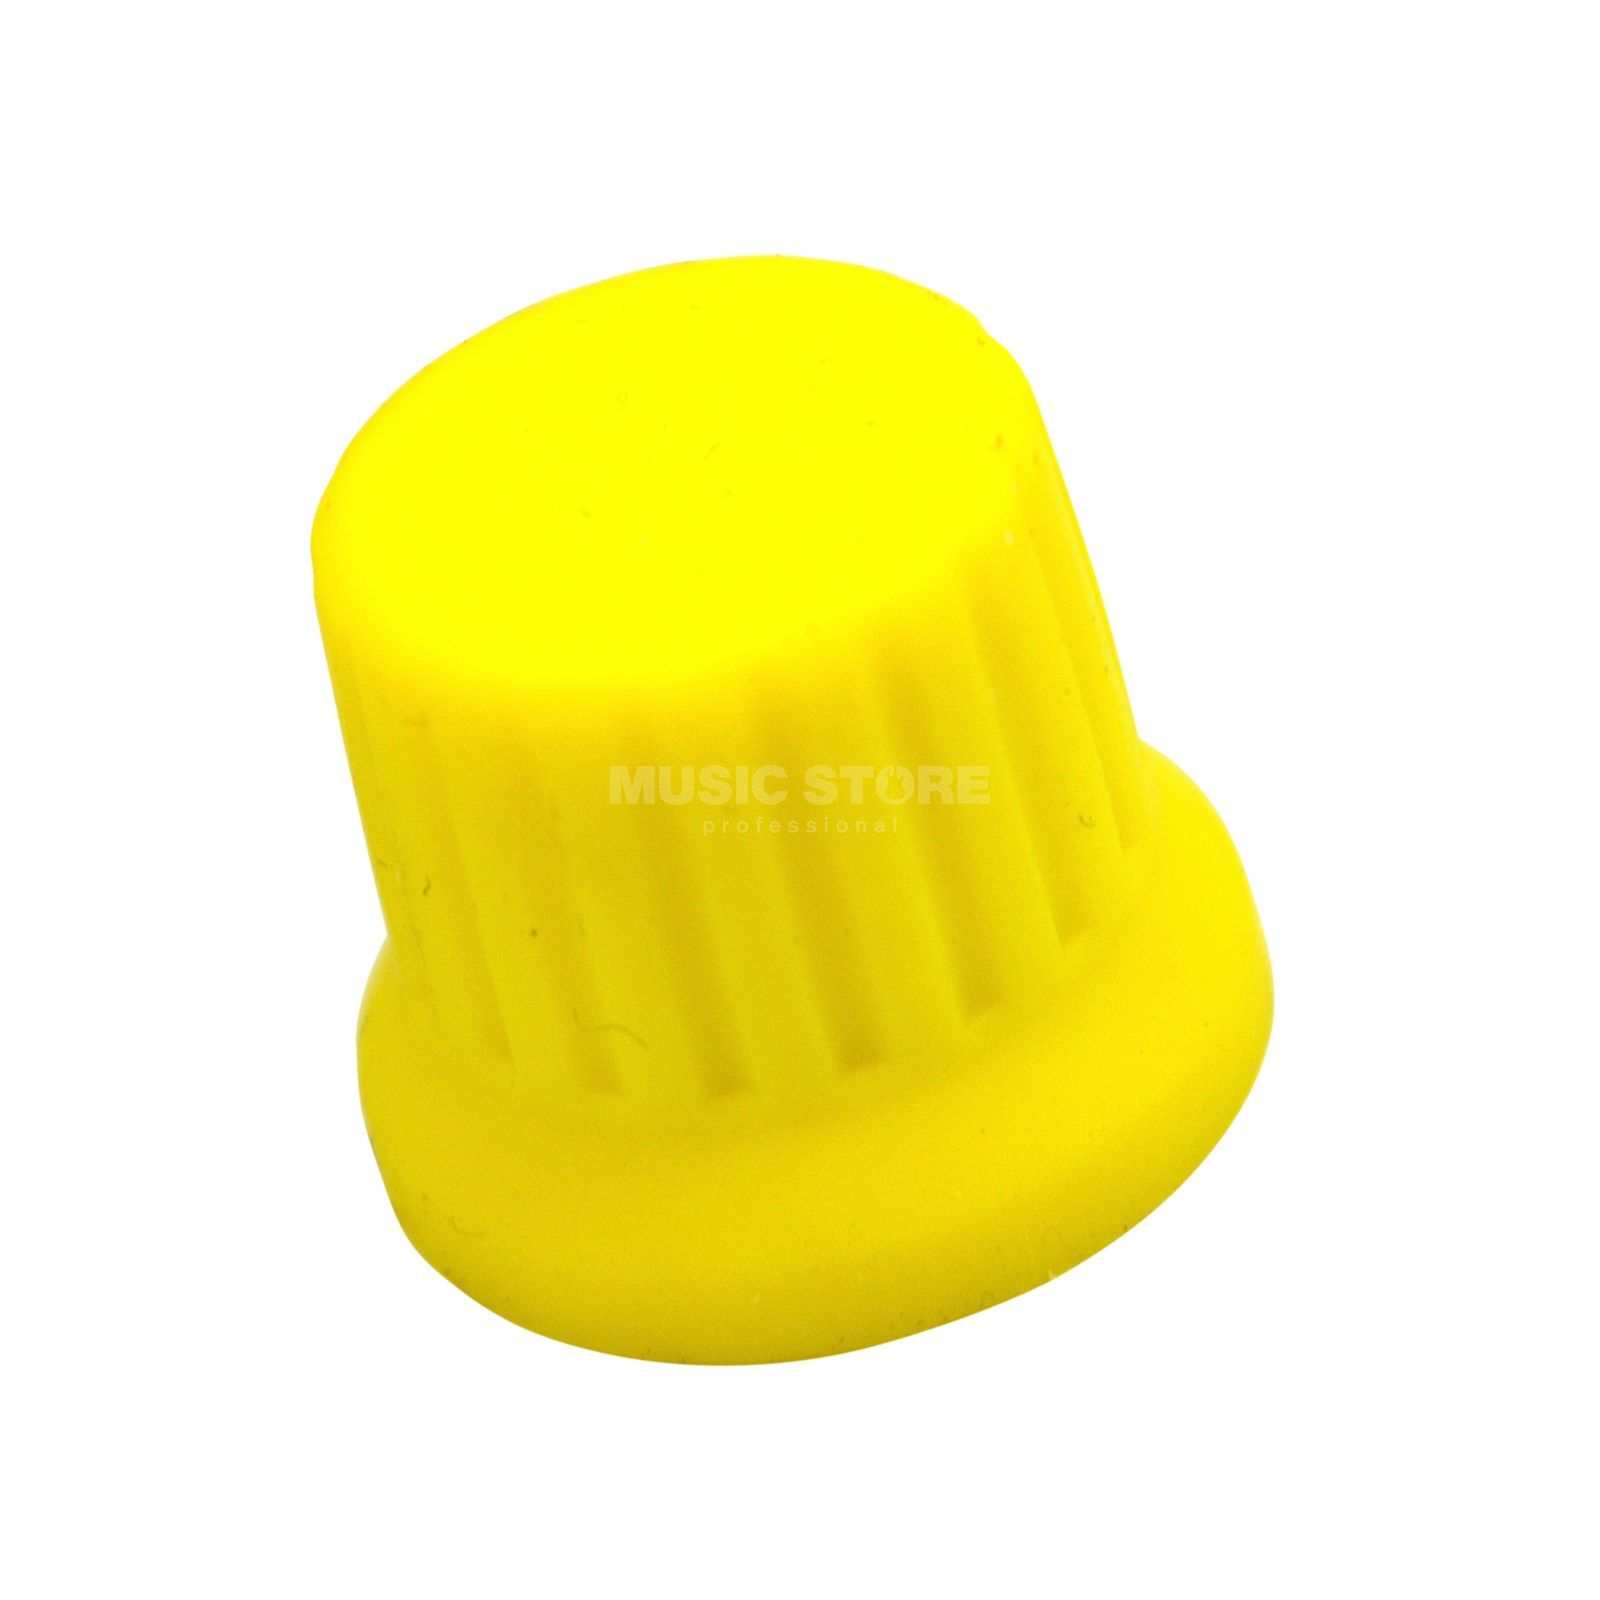 DJ TECHTOOLS Chroma Caps Encoder knop yellow Productafbeelding